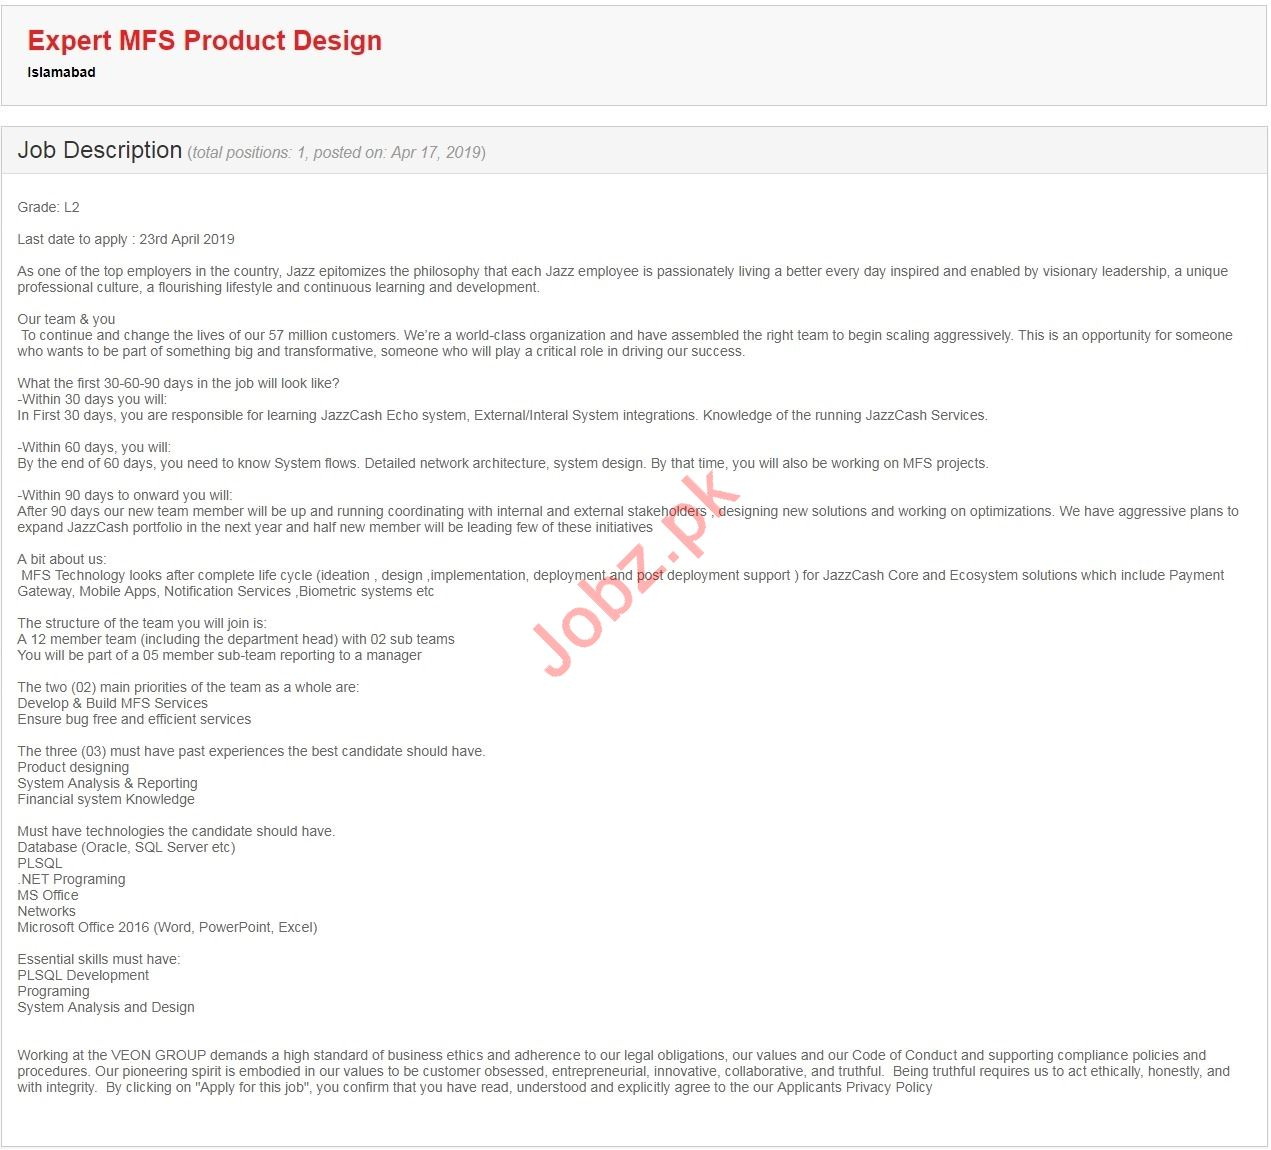 Expert MFS Product Design Jobs in Jazz Telecommunication